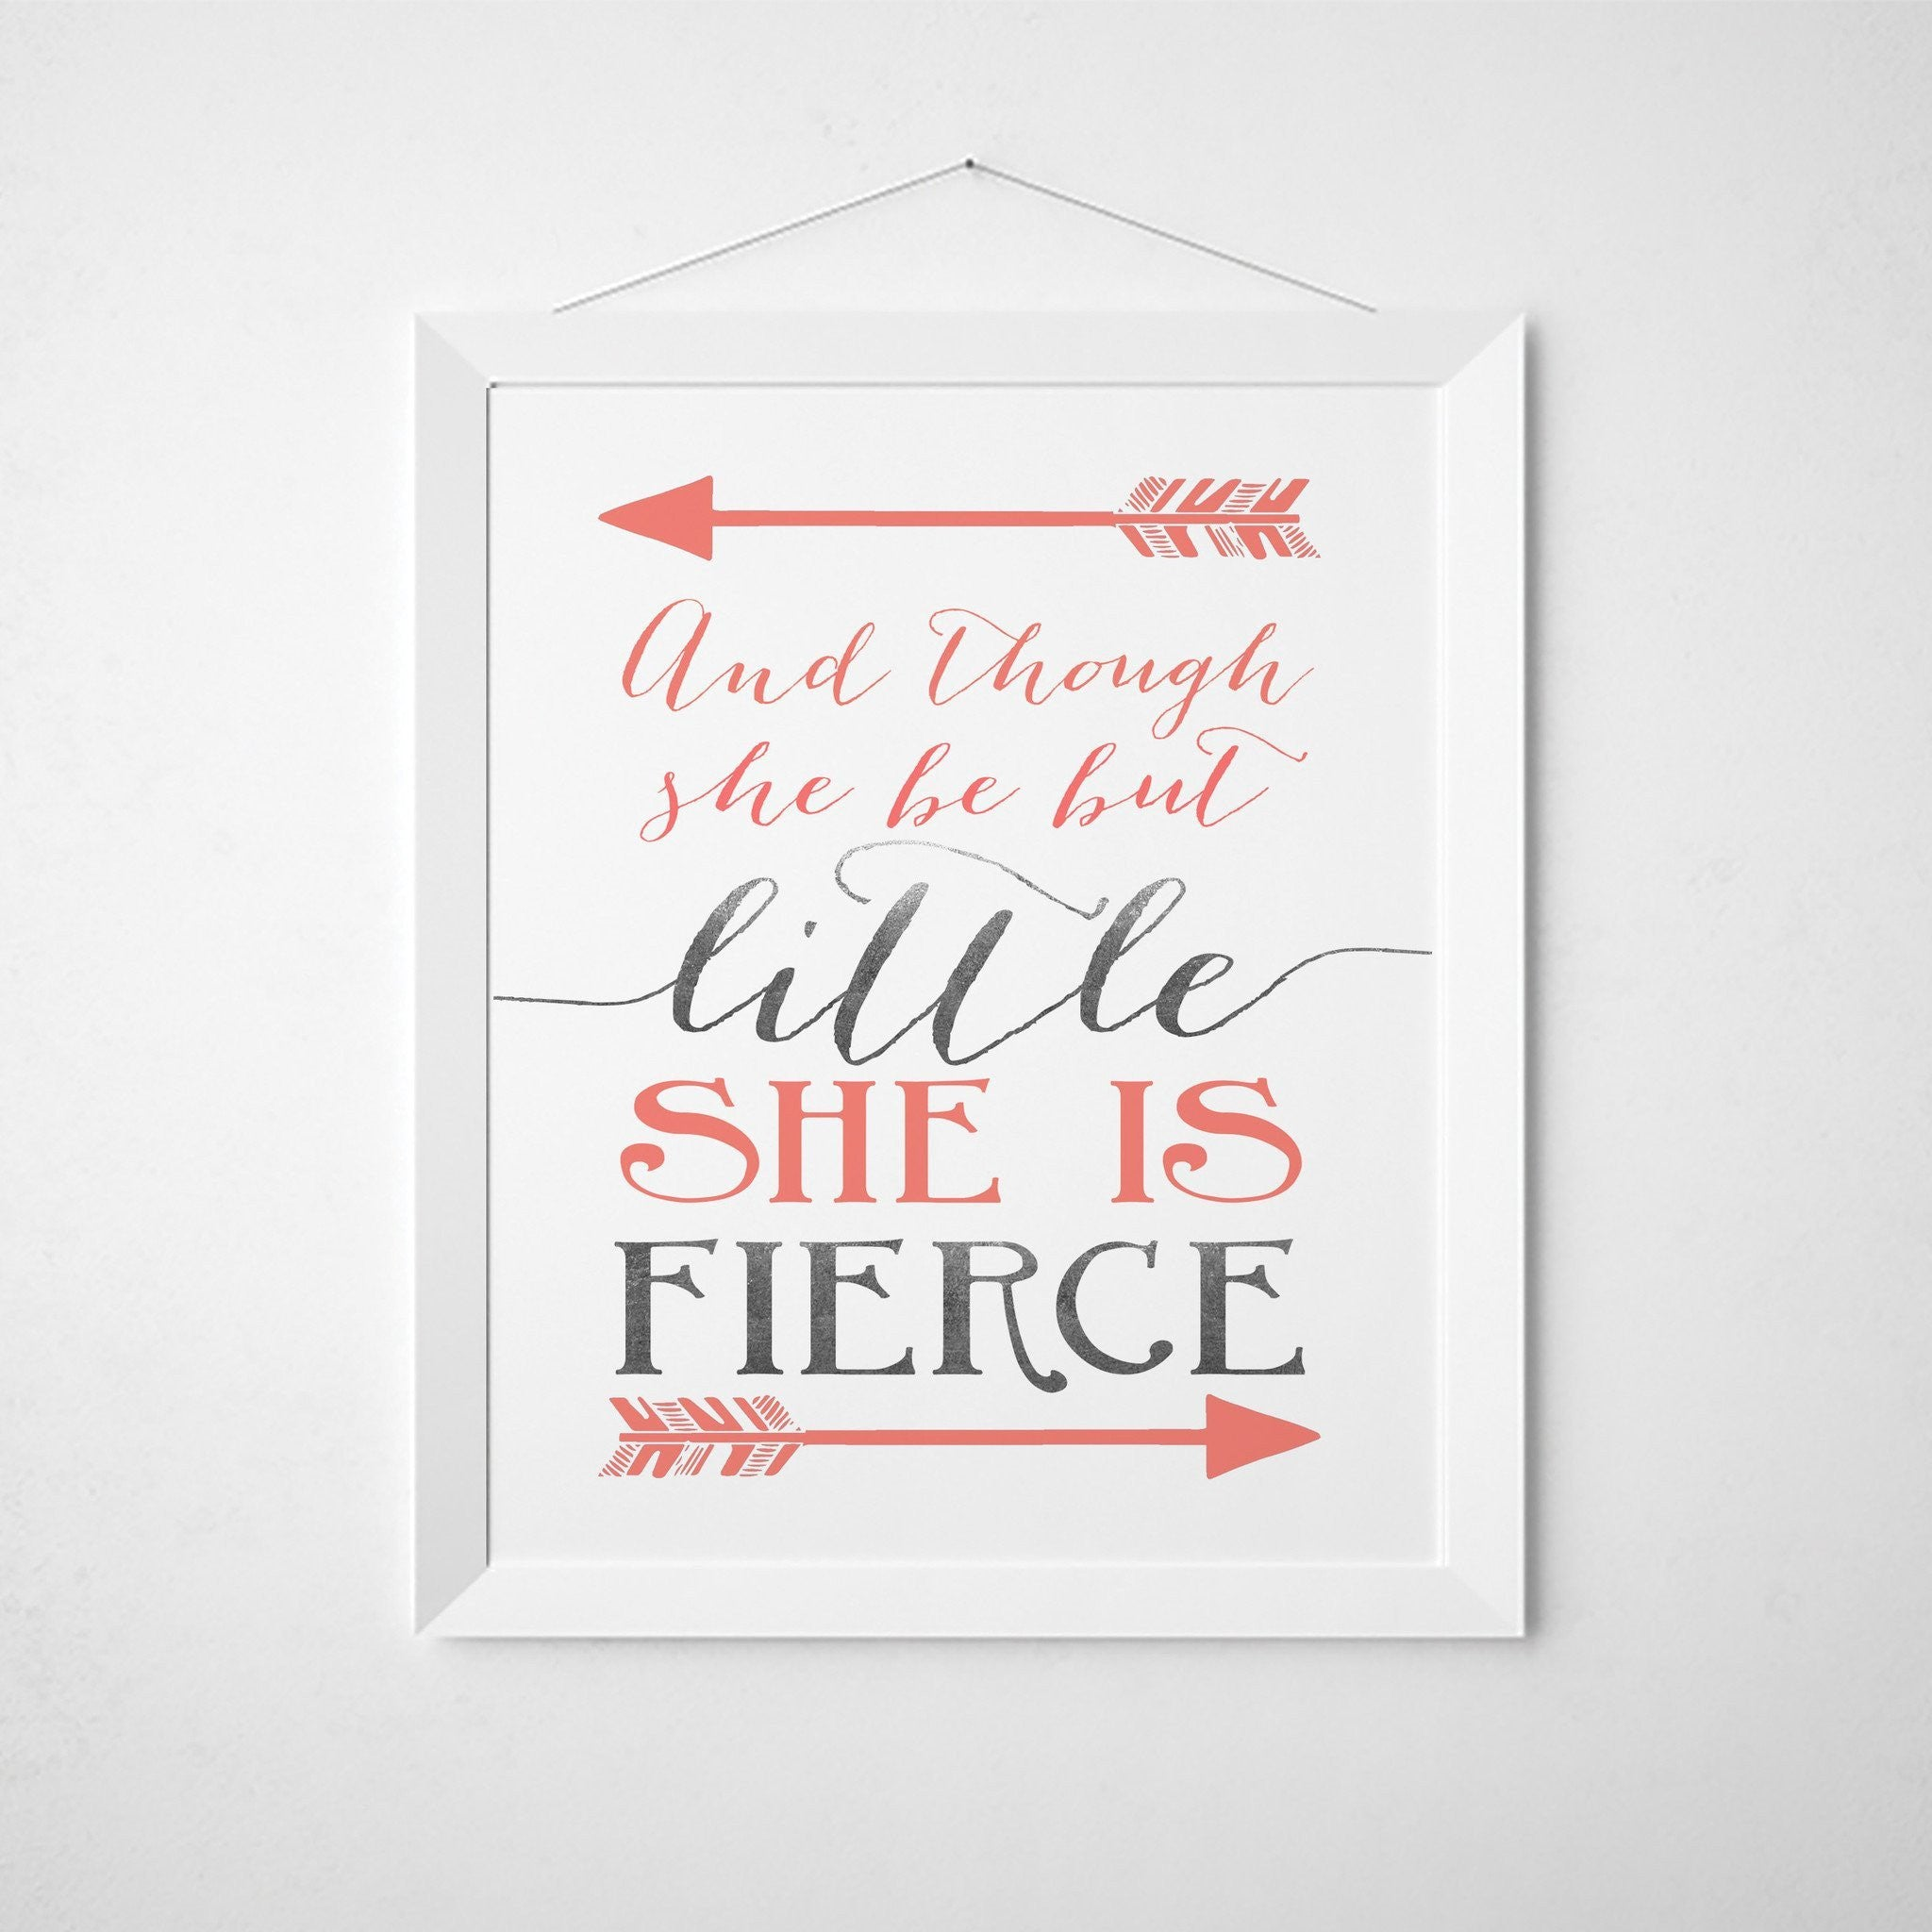 Wall and Wonder Wall Prints And though she be but little she is fierce - Grey and Coral Nursery Print